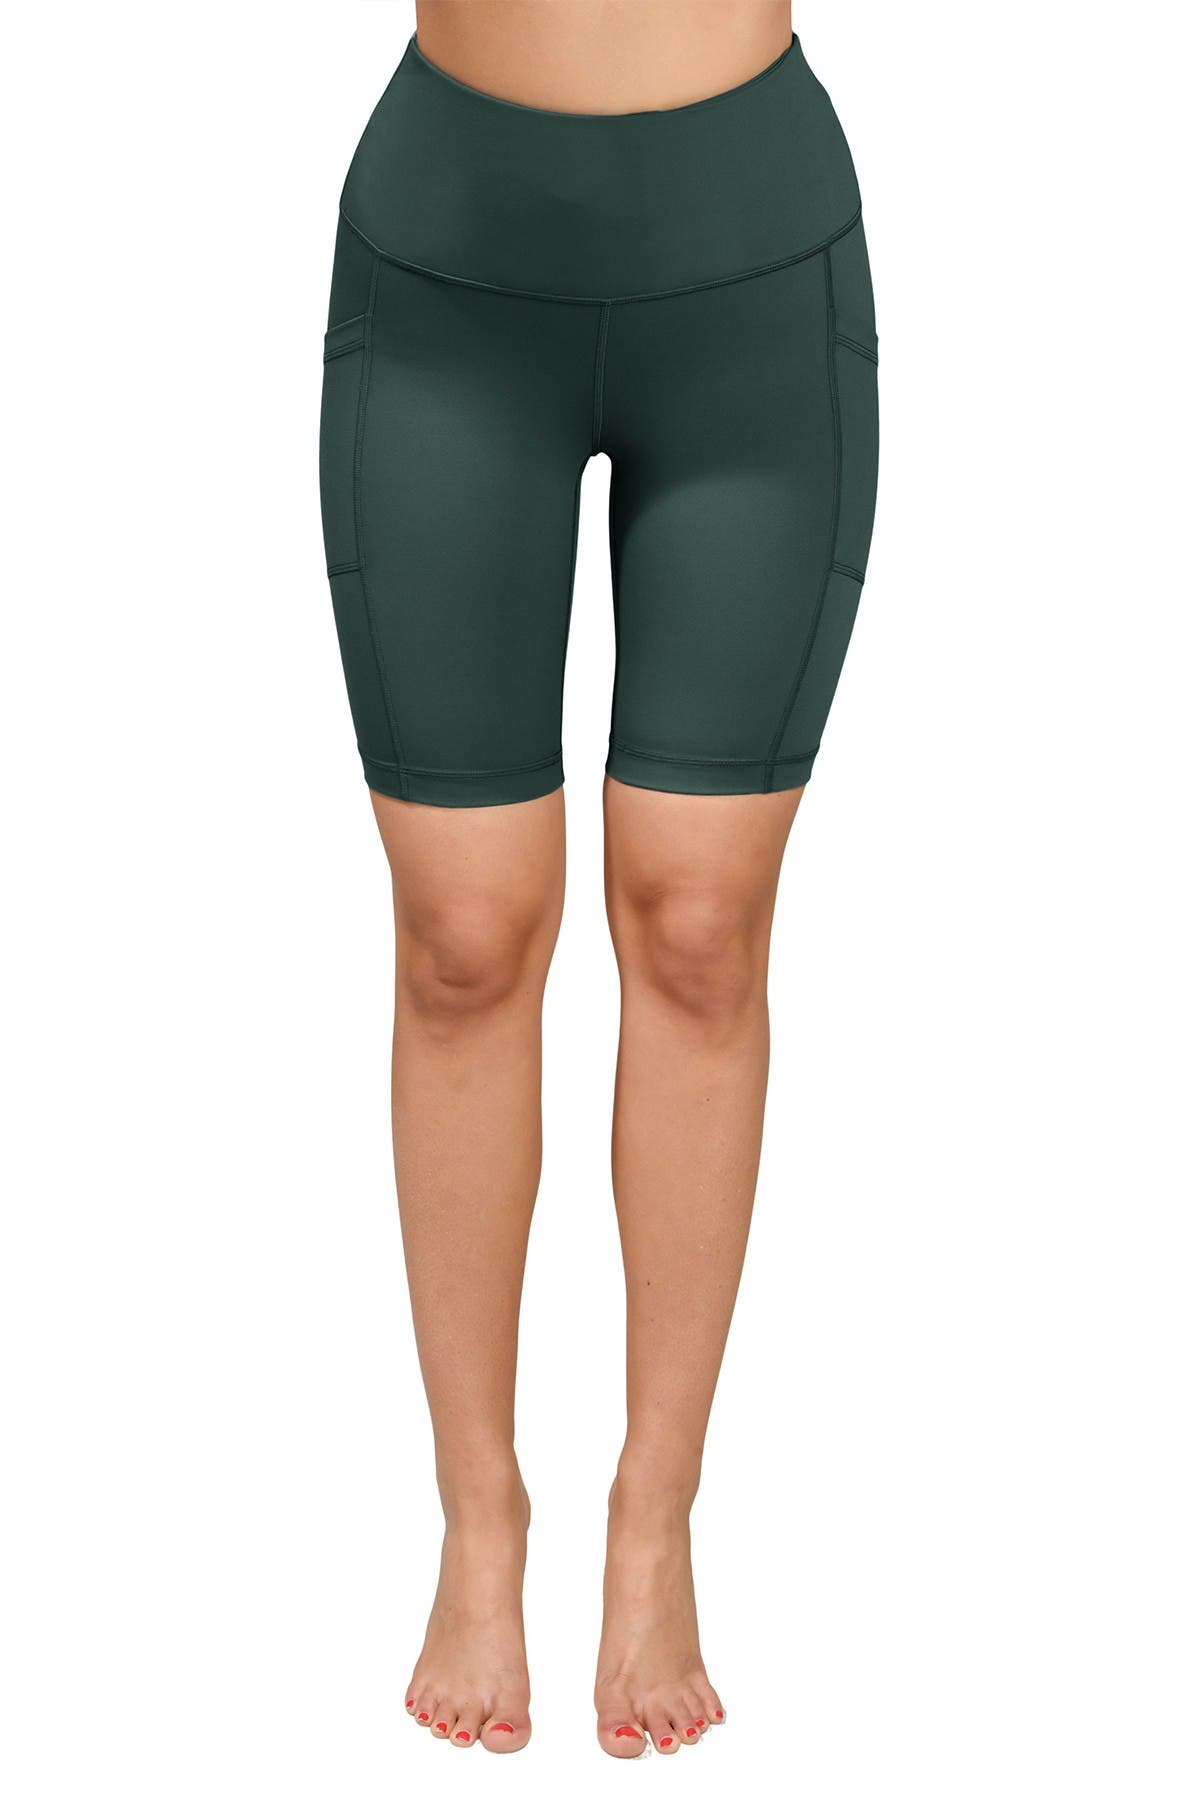 Image of 90 Degree By Reflex Lux High Waisted Pocket Biker Shorts